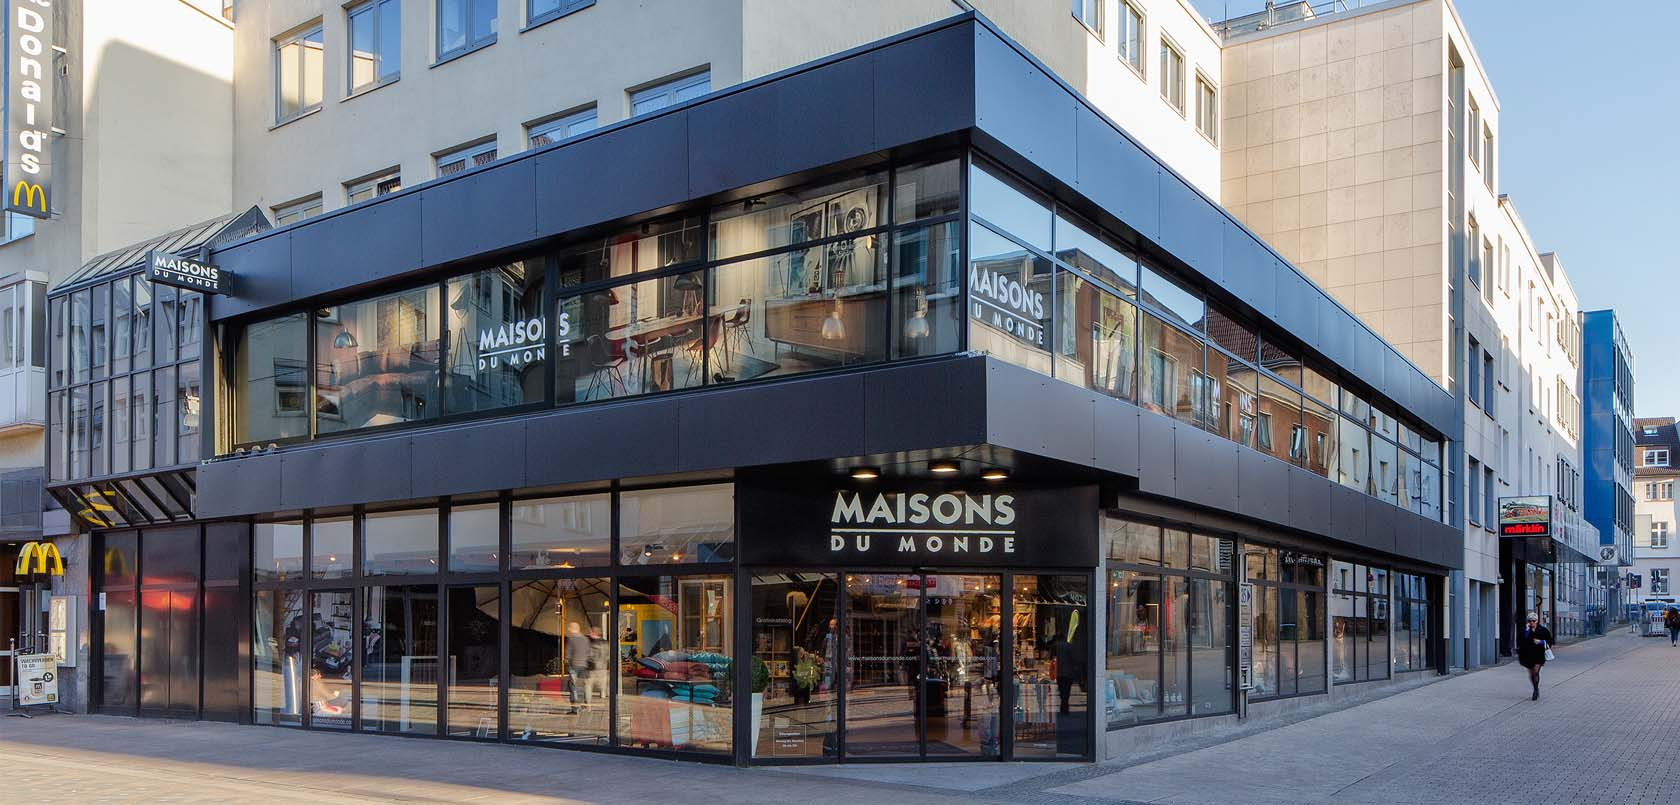 affordable maisons du monde store in dortmund germany with maison du monde logo. Black Bedroom Furniture Sets. Home Design Ideas